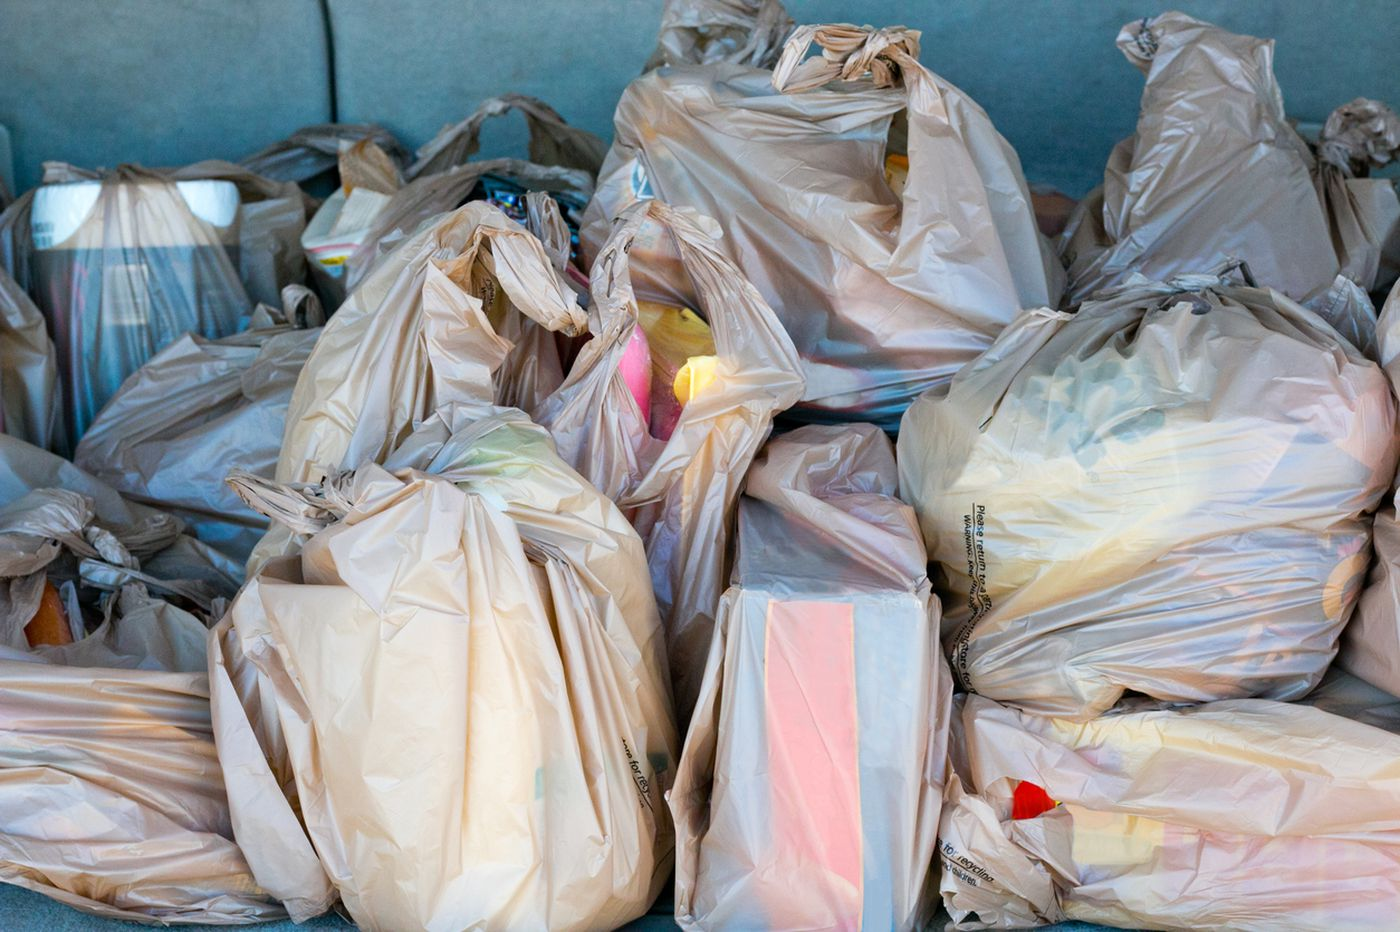 N.J. Gov. Murphy to veto 5-cent plastic-bag fee. But could a full ban be coming?